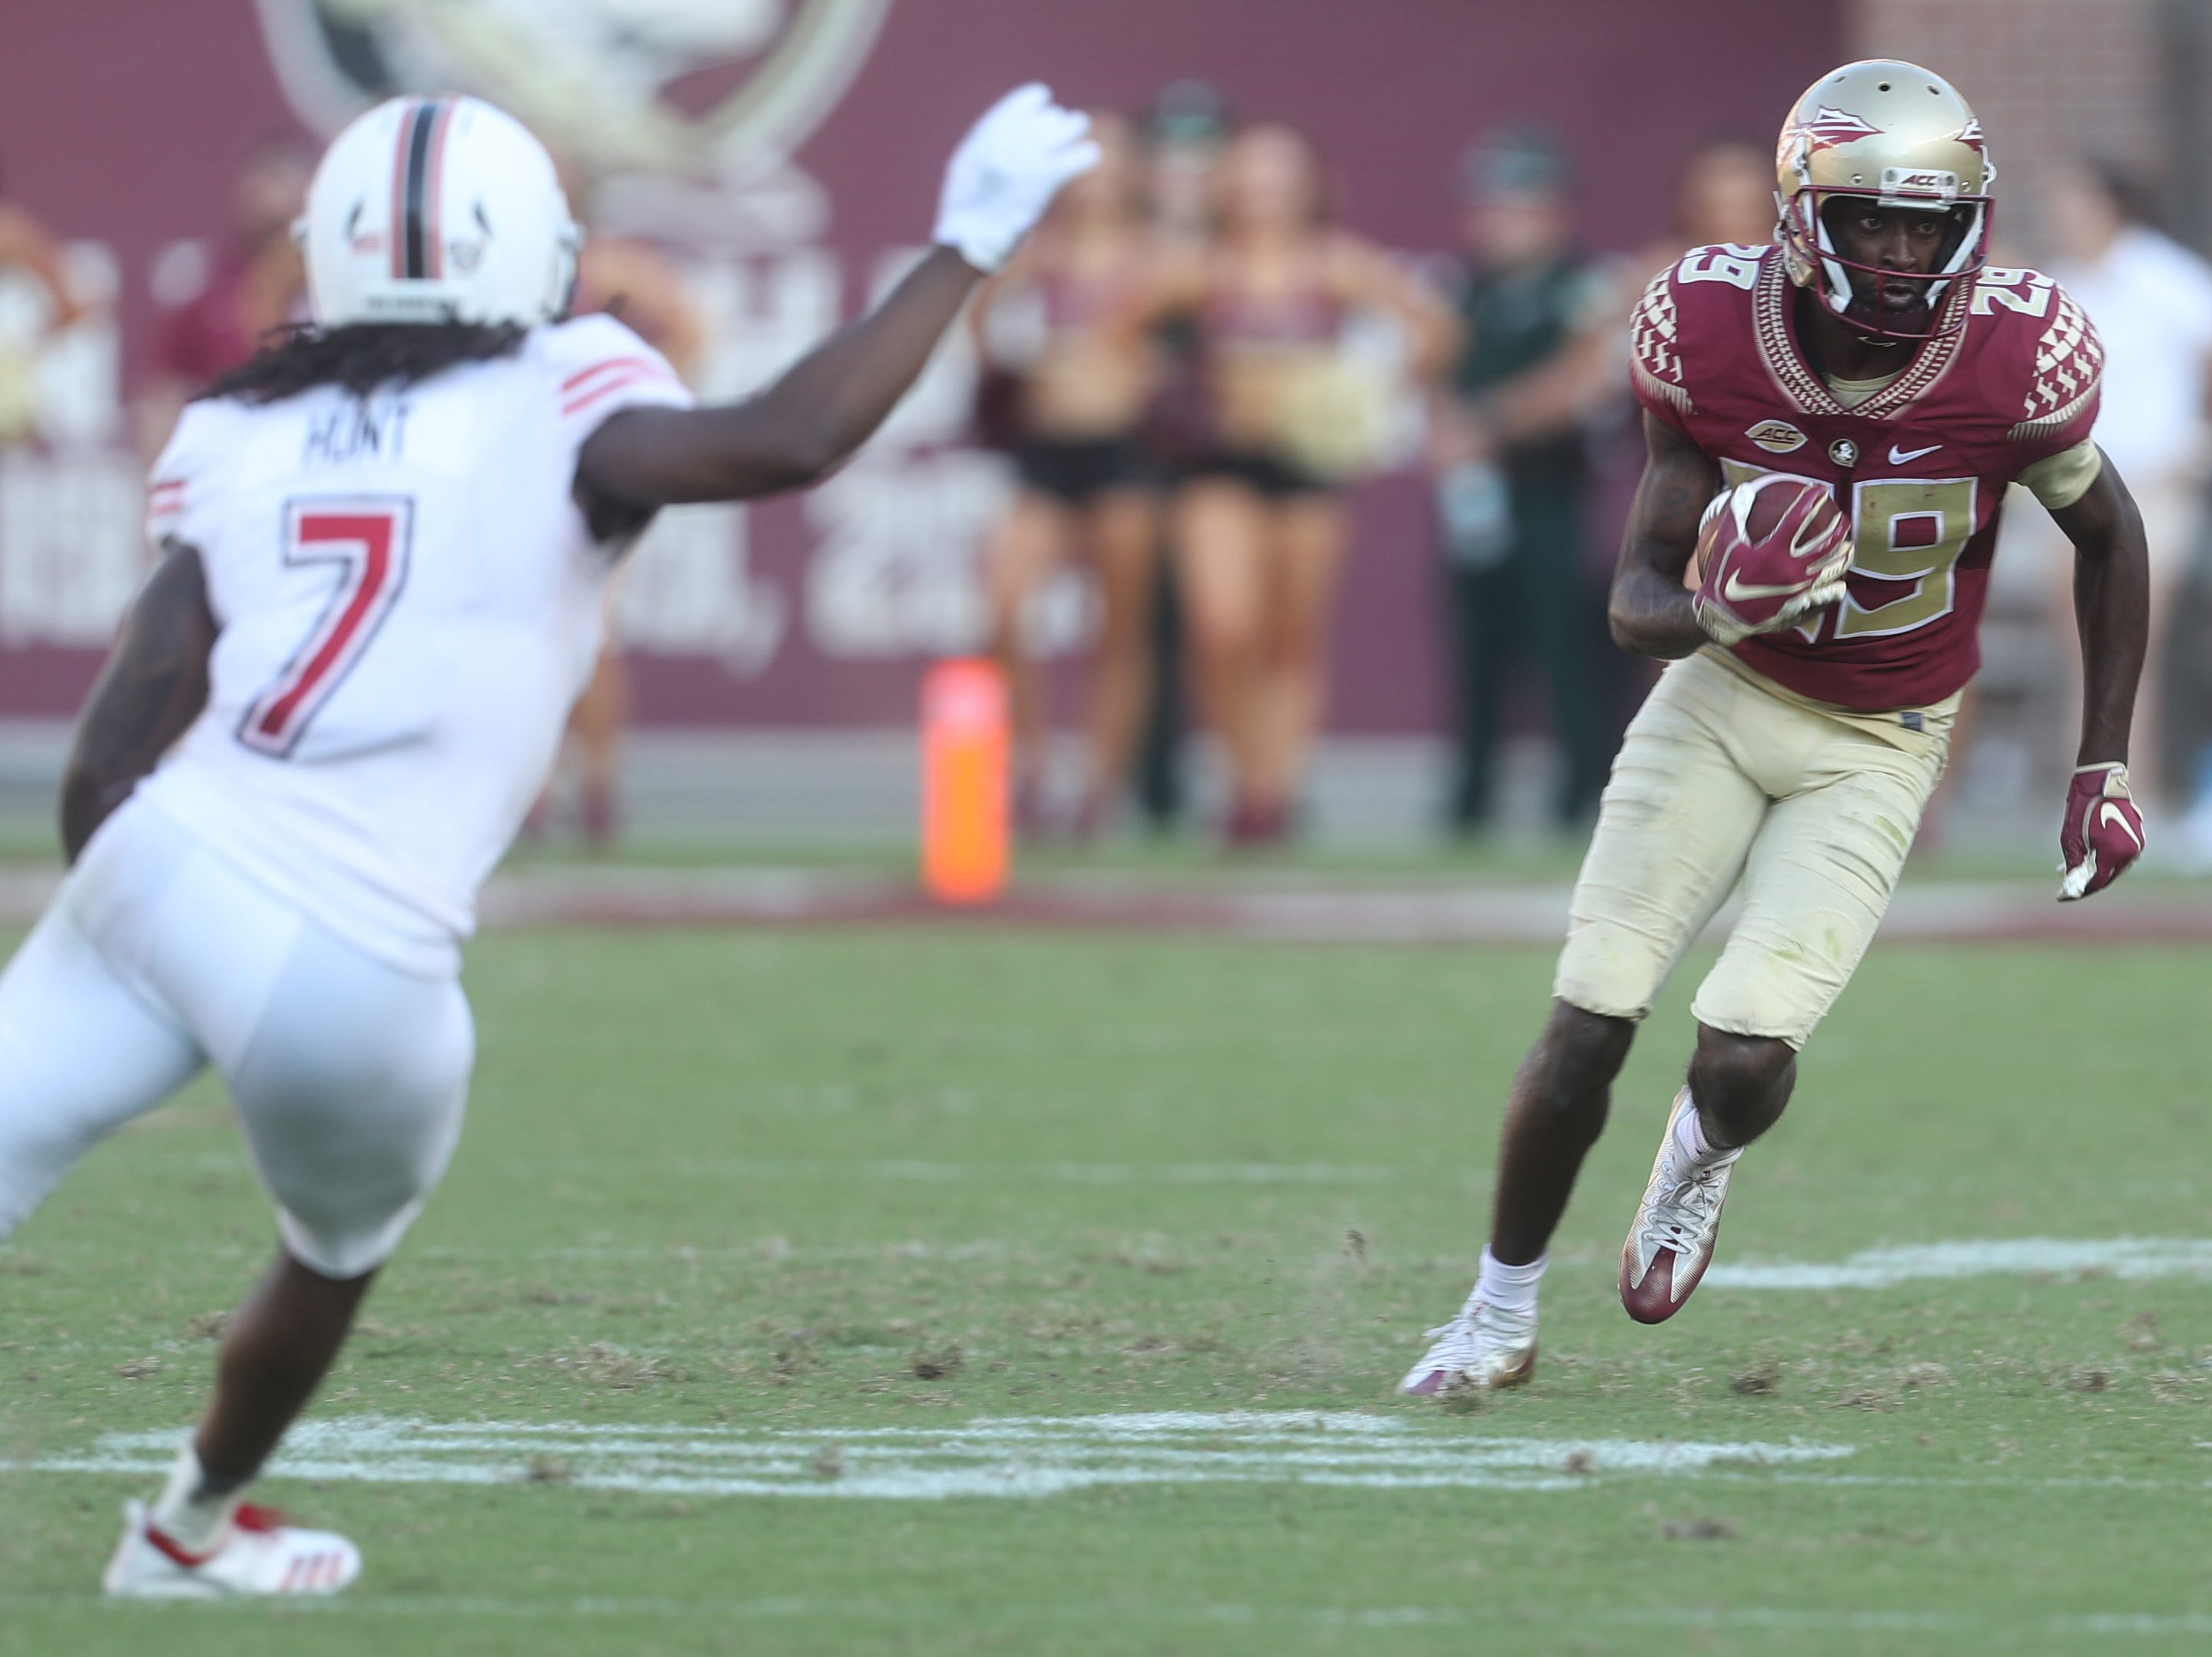 Florida State Seminoles wide receiver D.J. Matthews (29) runs the ball during a game between the Florida State University Seminoles and the Northern Illinois University Huskies at Doak S. Campbell Stadium in Tallahassee, Fla. Saturday, September 22, 2018.